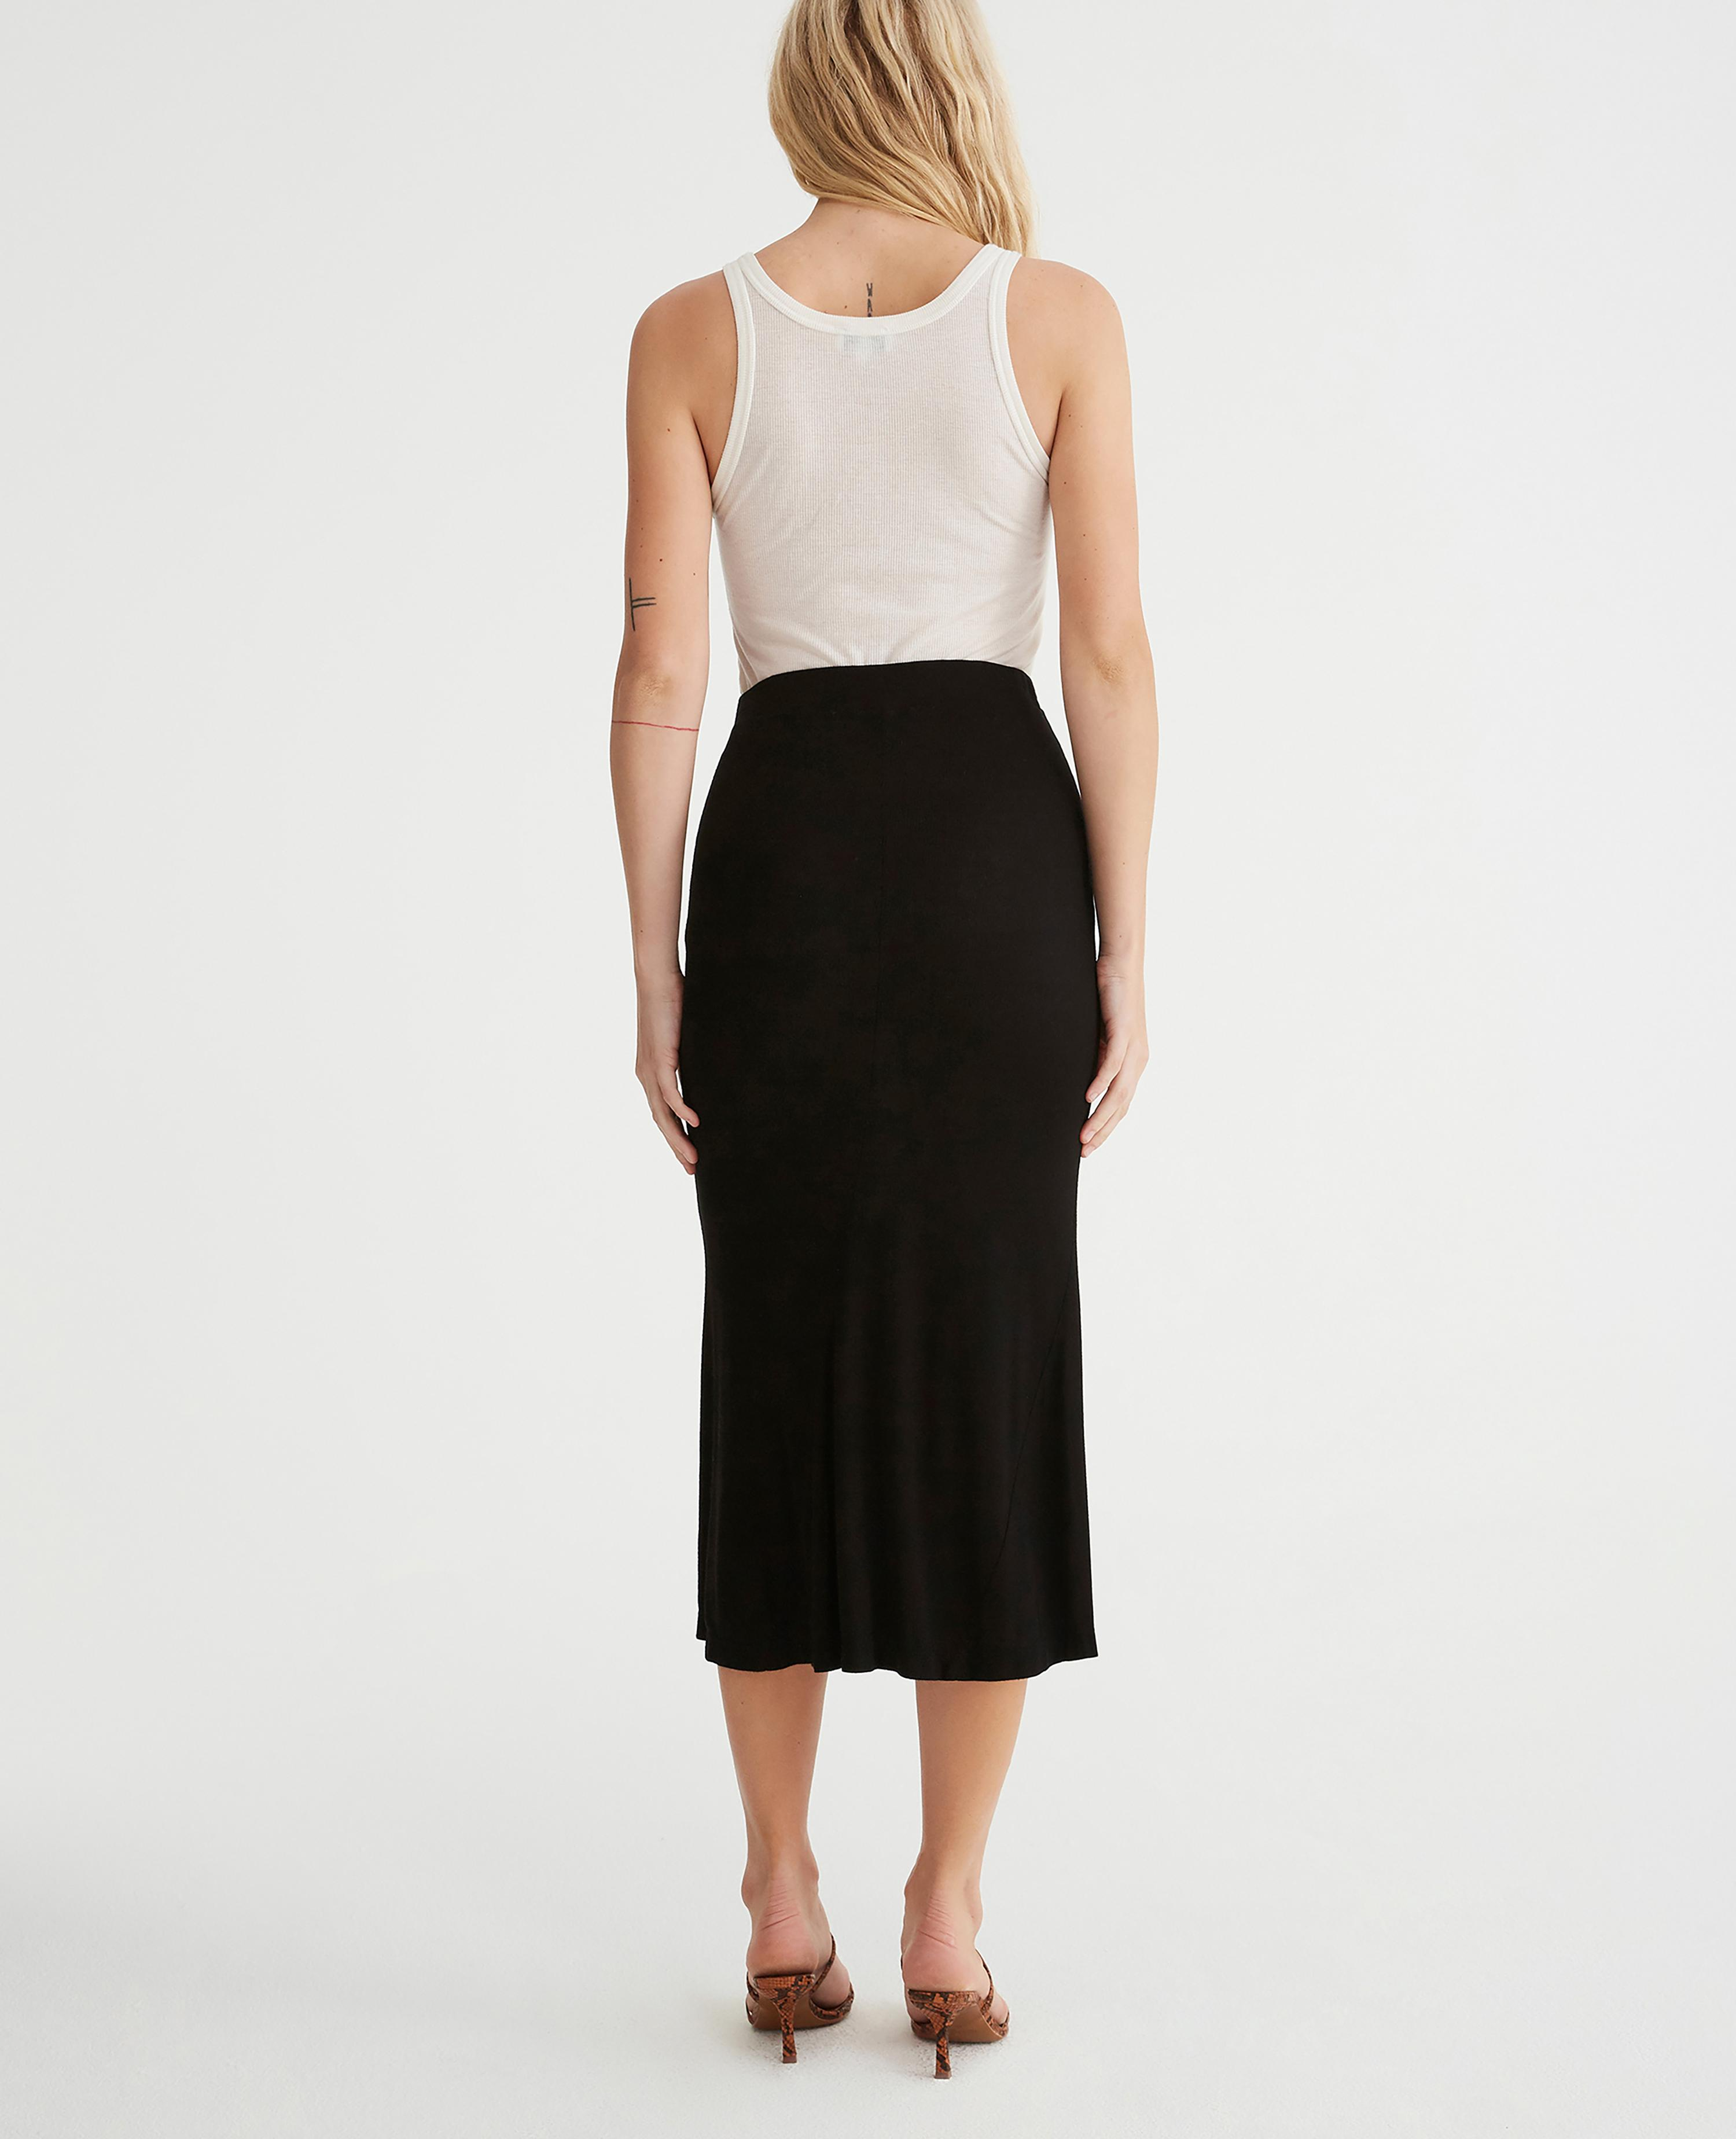 The Peary Skirt